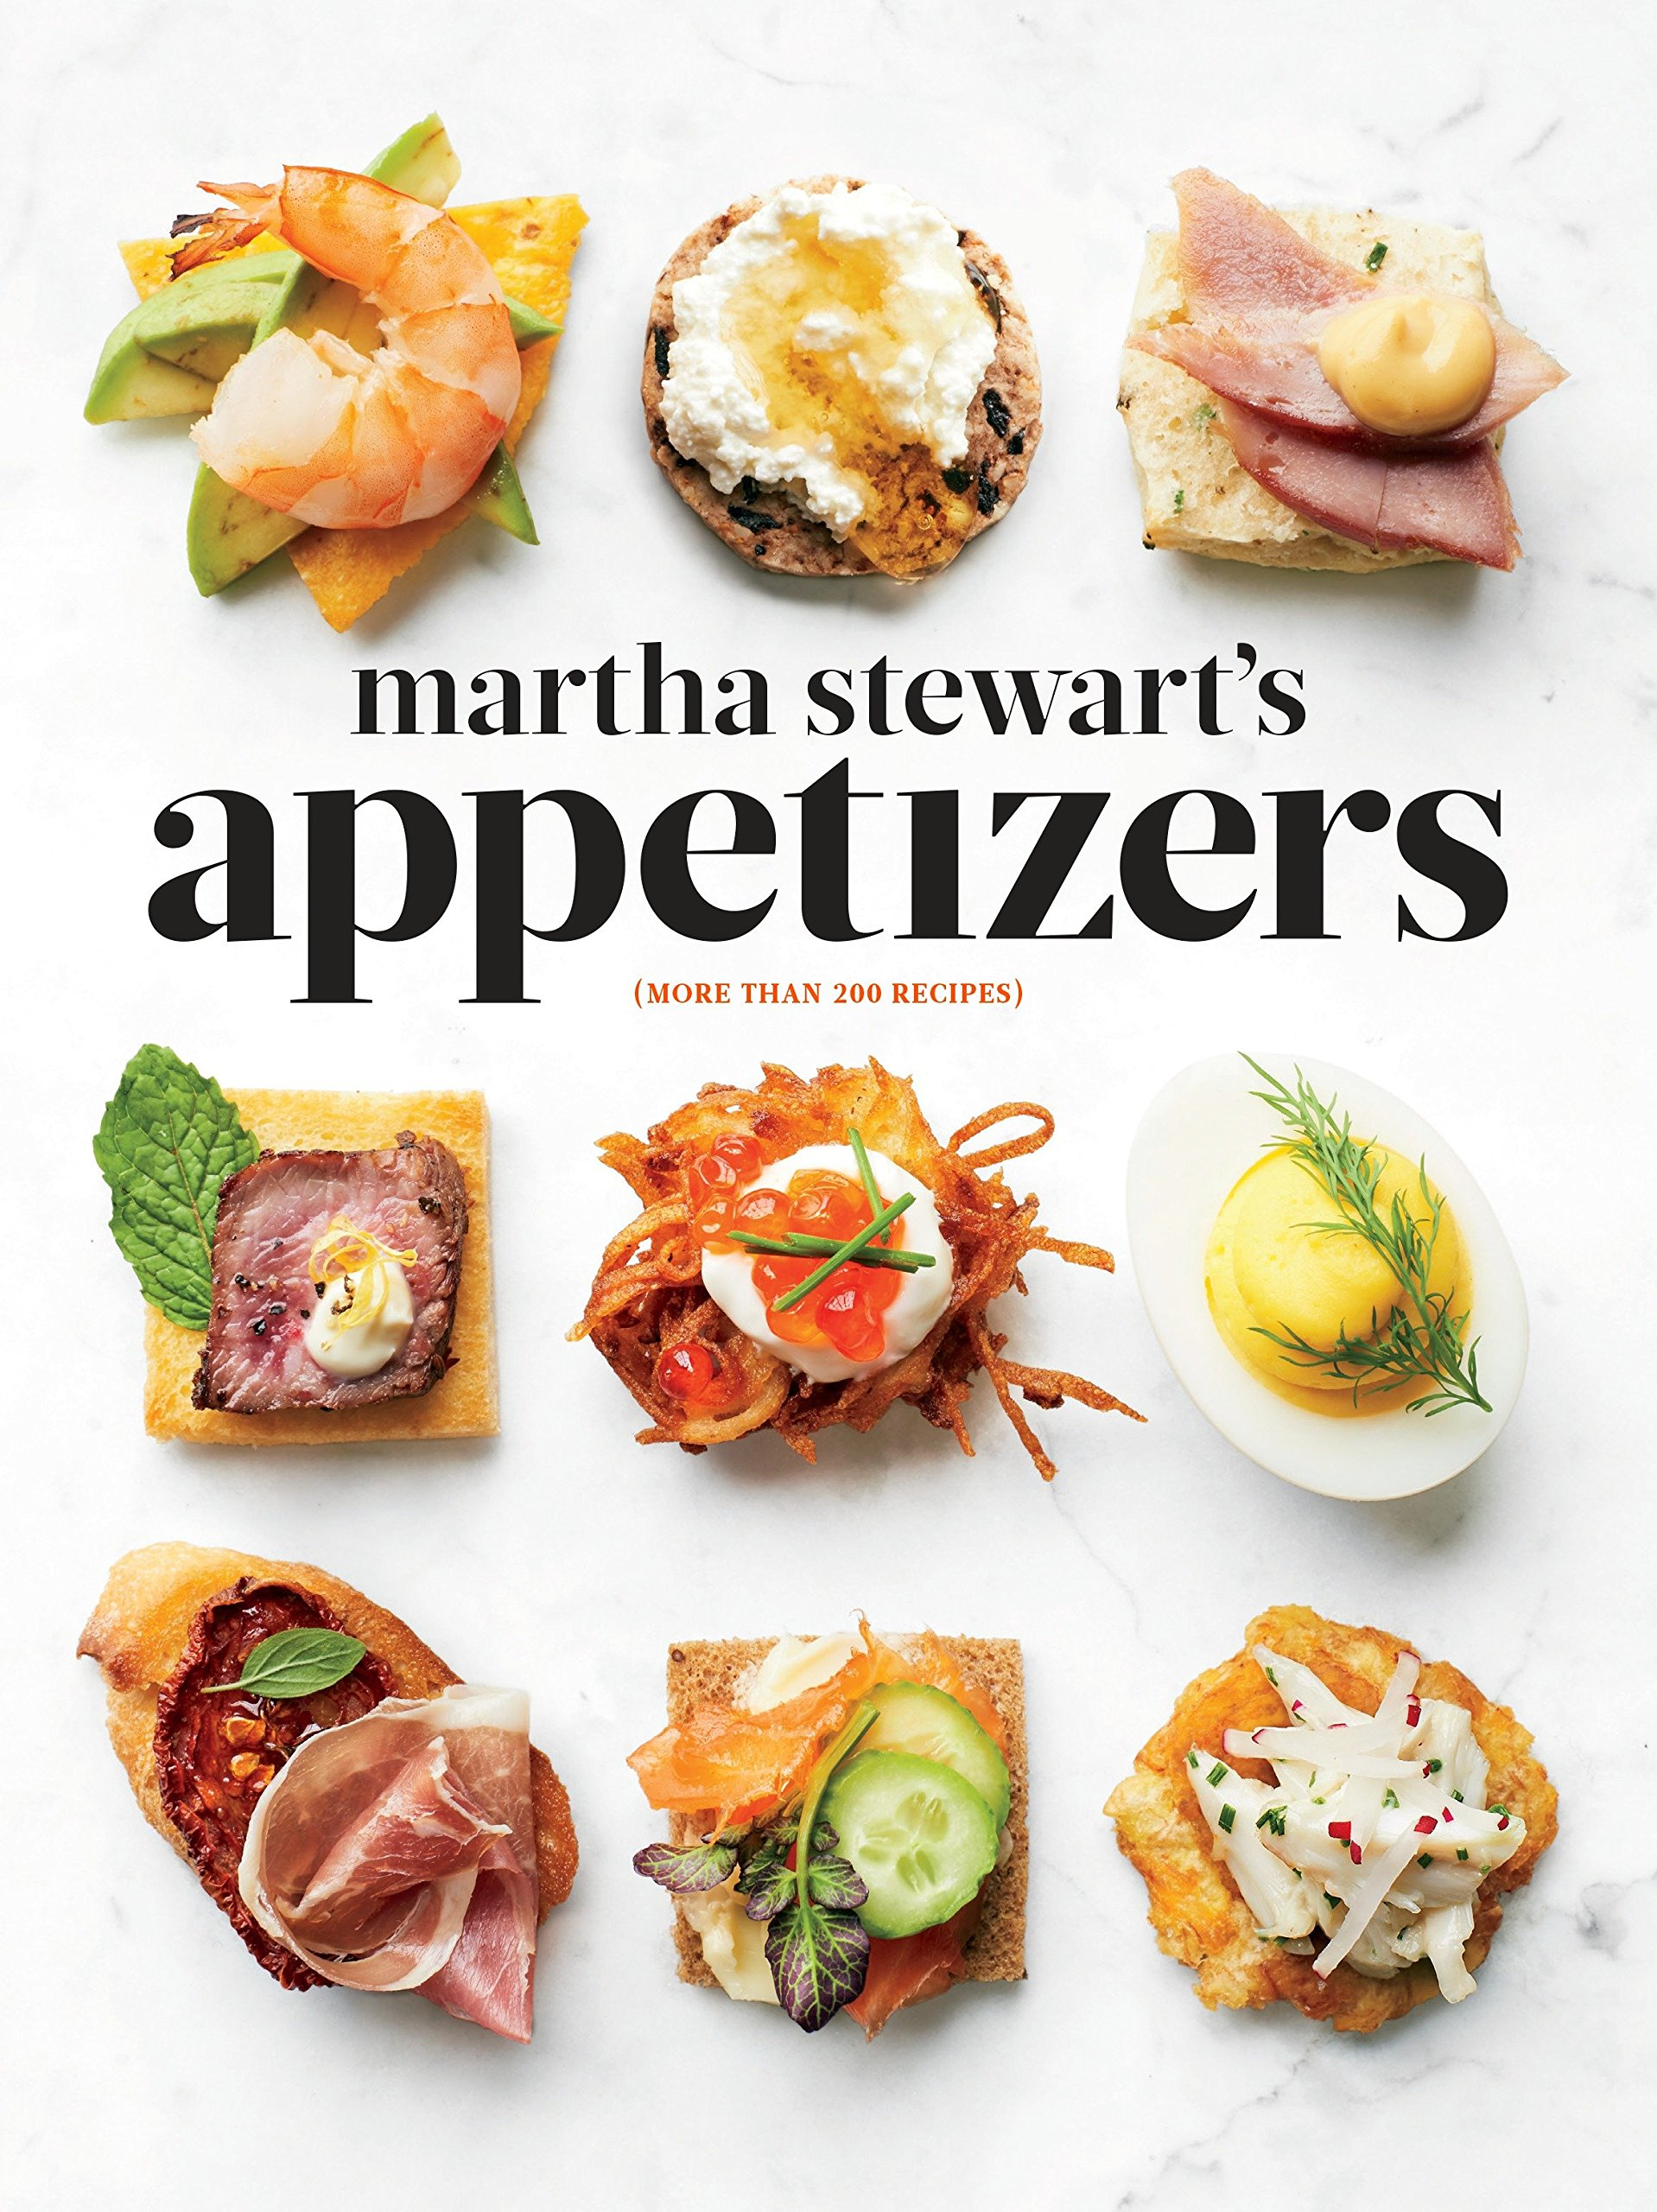 91wW3OpPSYL - Martha Stewart's Appetizers: 200 Recipes for Dips, Spreads, Snacks, Small Plates, and Other Delicious Hors D'oeuvres, Plus 30 Cocktails